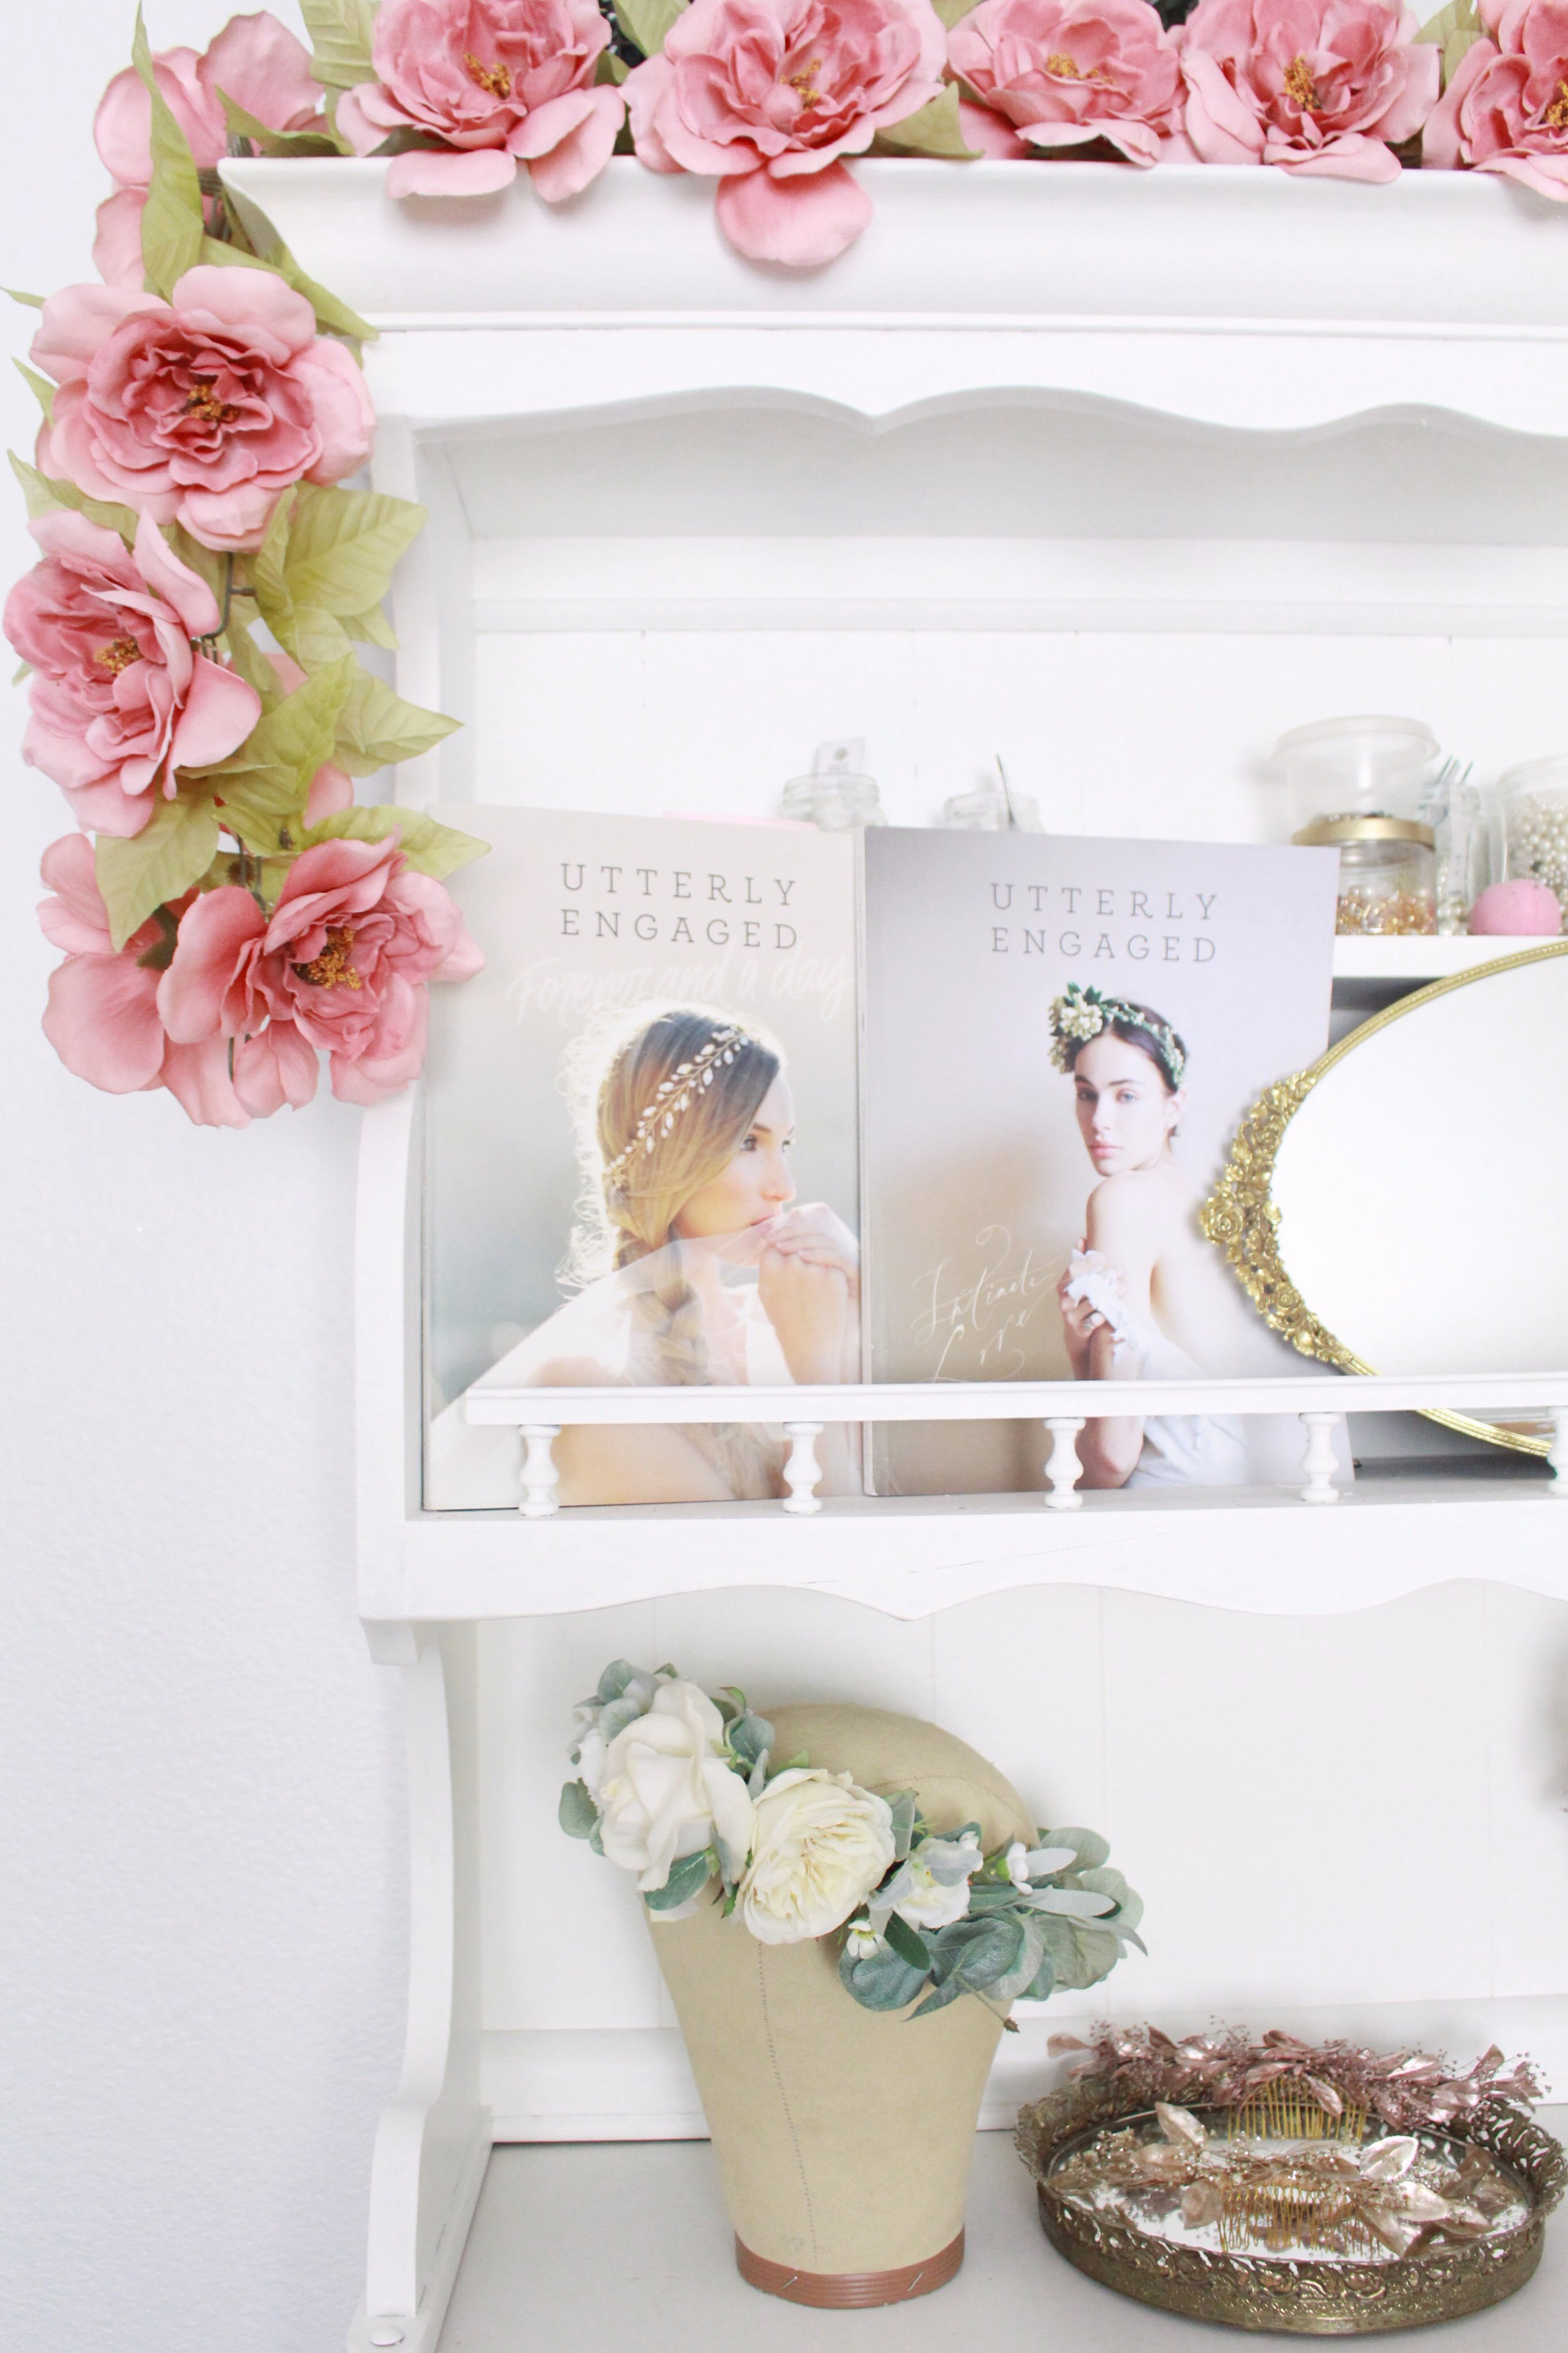 Pretty studio space of bridal designer Love Sparkle Pretty. Flower crowns craft room. Where women create.